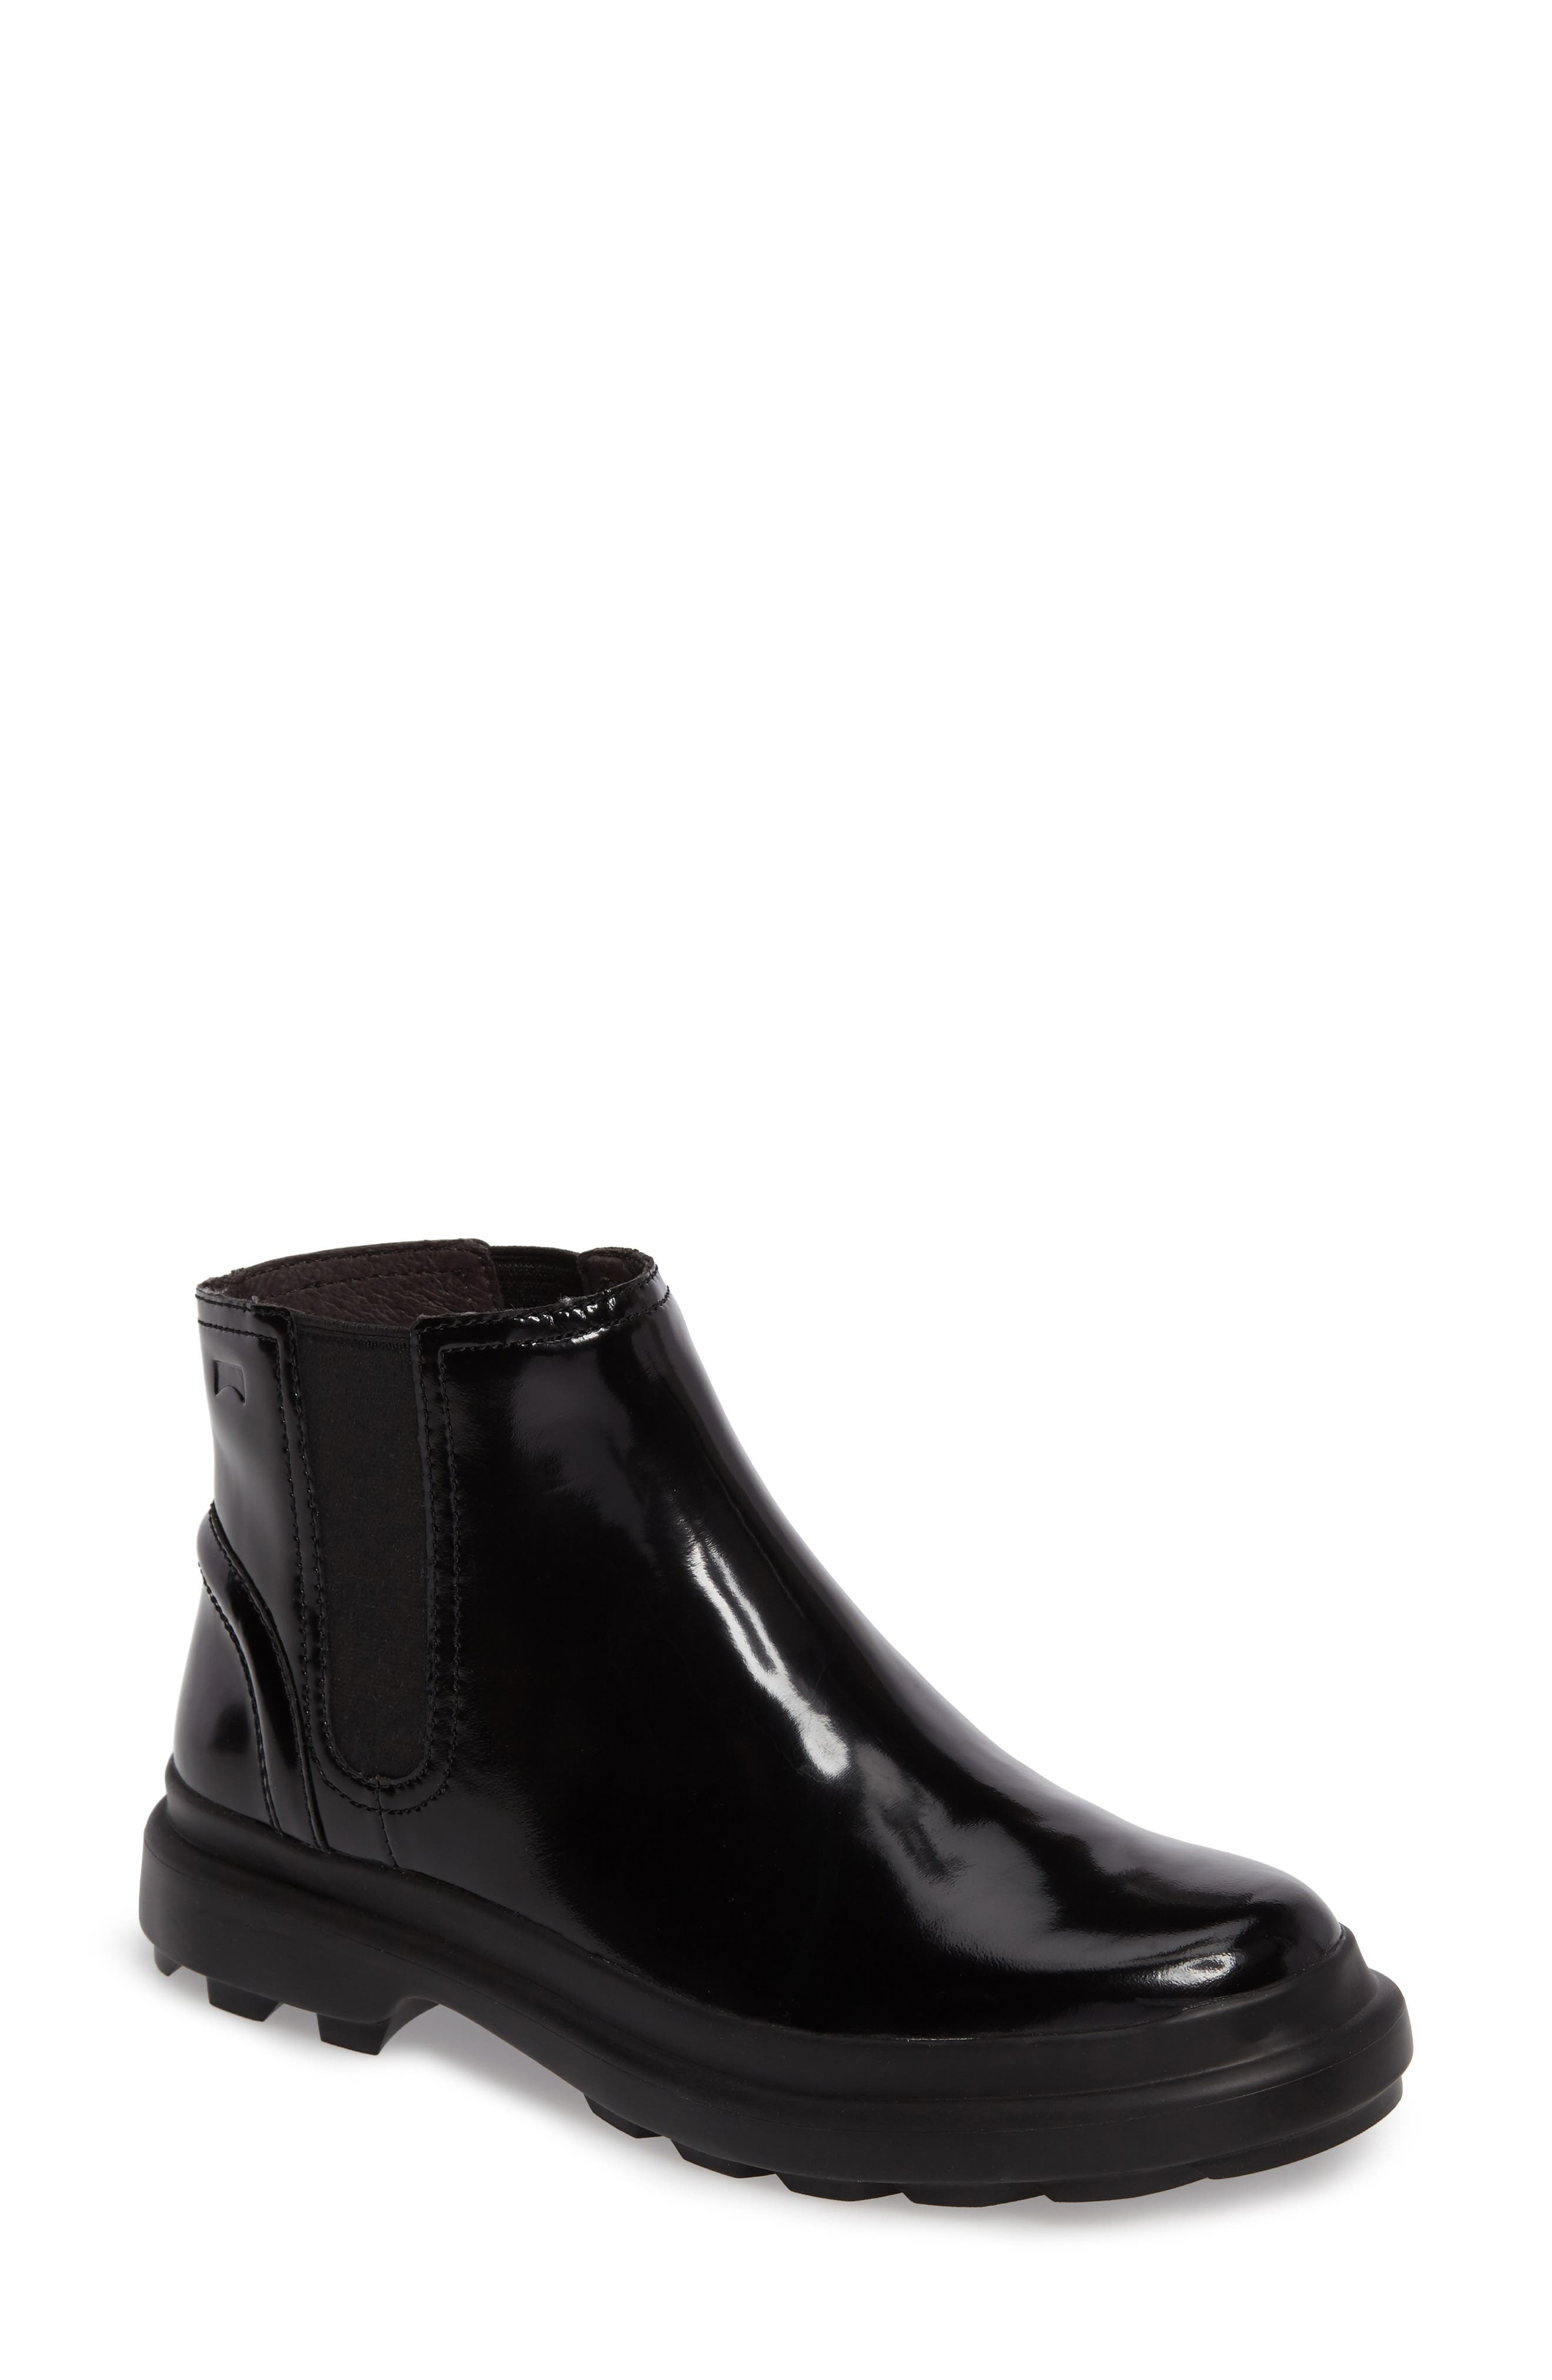 Turtle Lugged Chelsea Boot,                             Main thumbnail 1, color,                             001